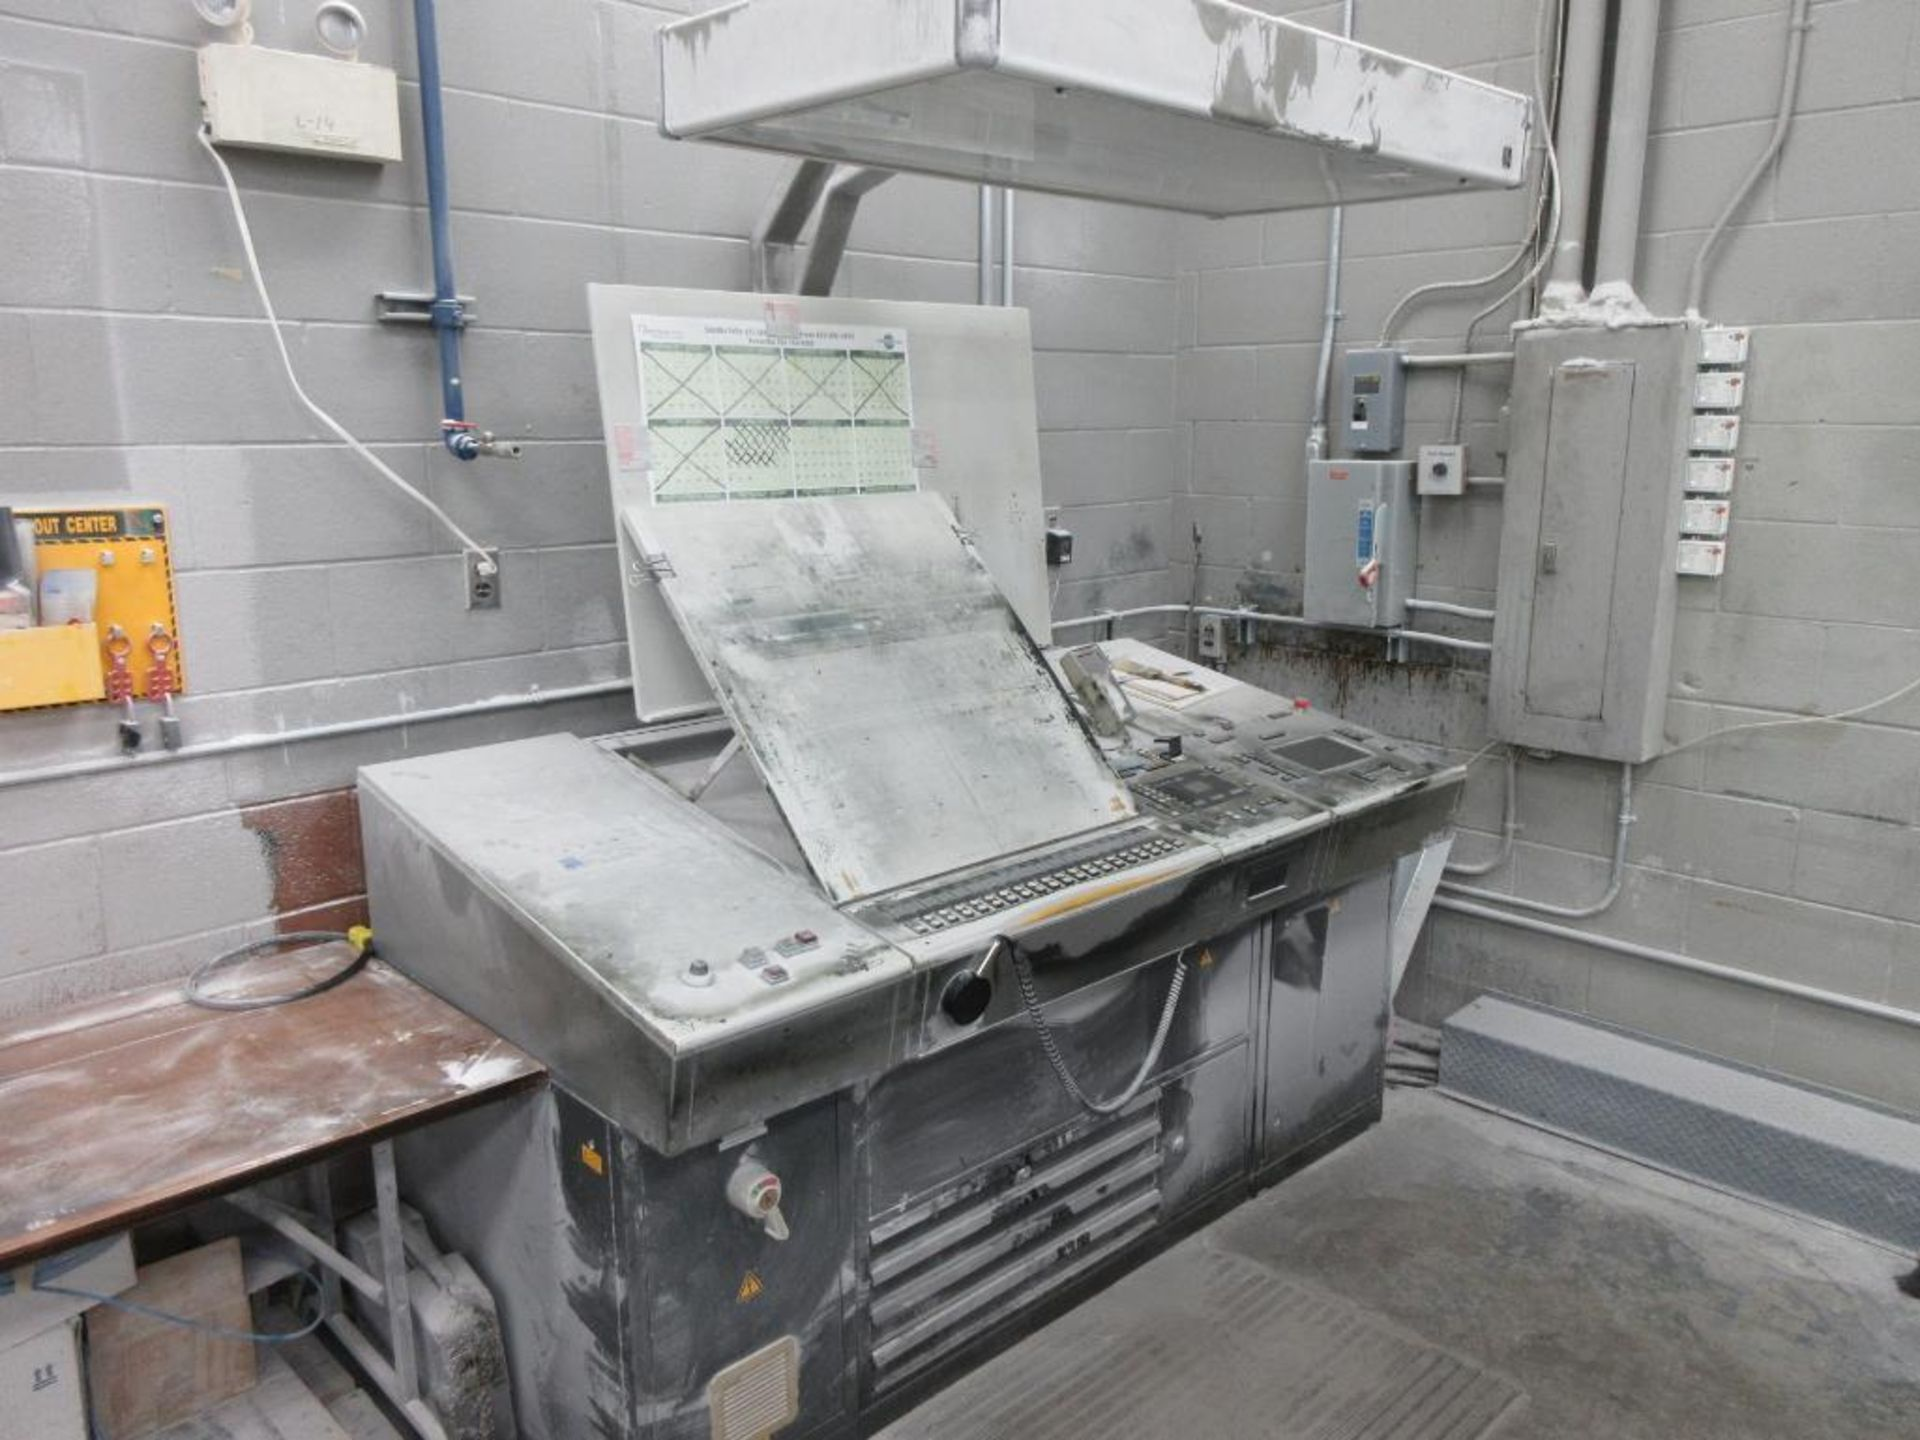 HEIDELBERG MOSP-H 19 x 25_, 6 color sheet fed offset perfecting press with high pile delivery, sn 61 - Image 7 of 10